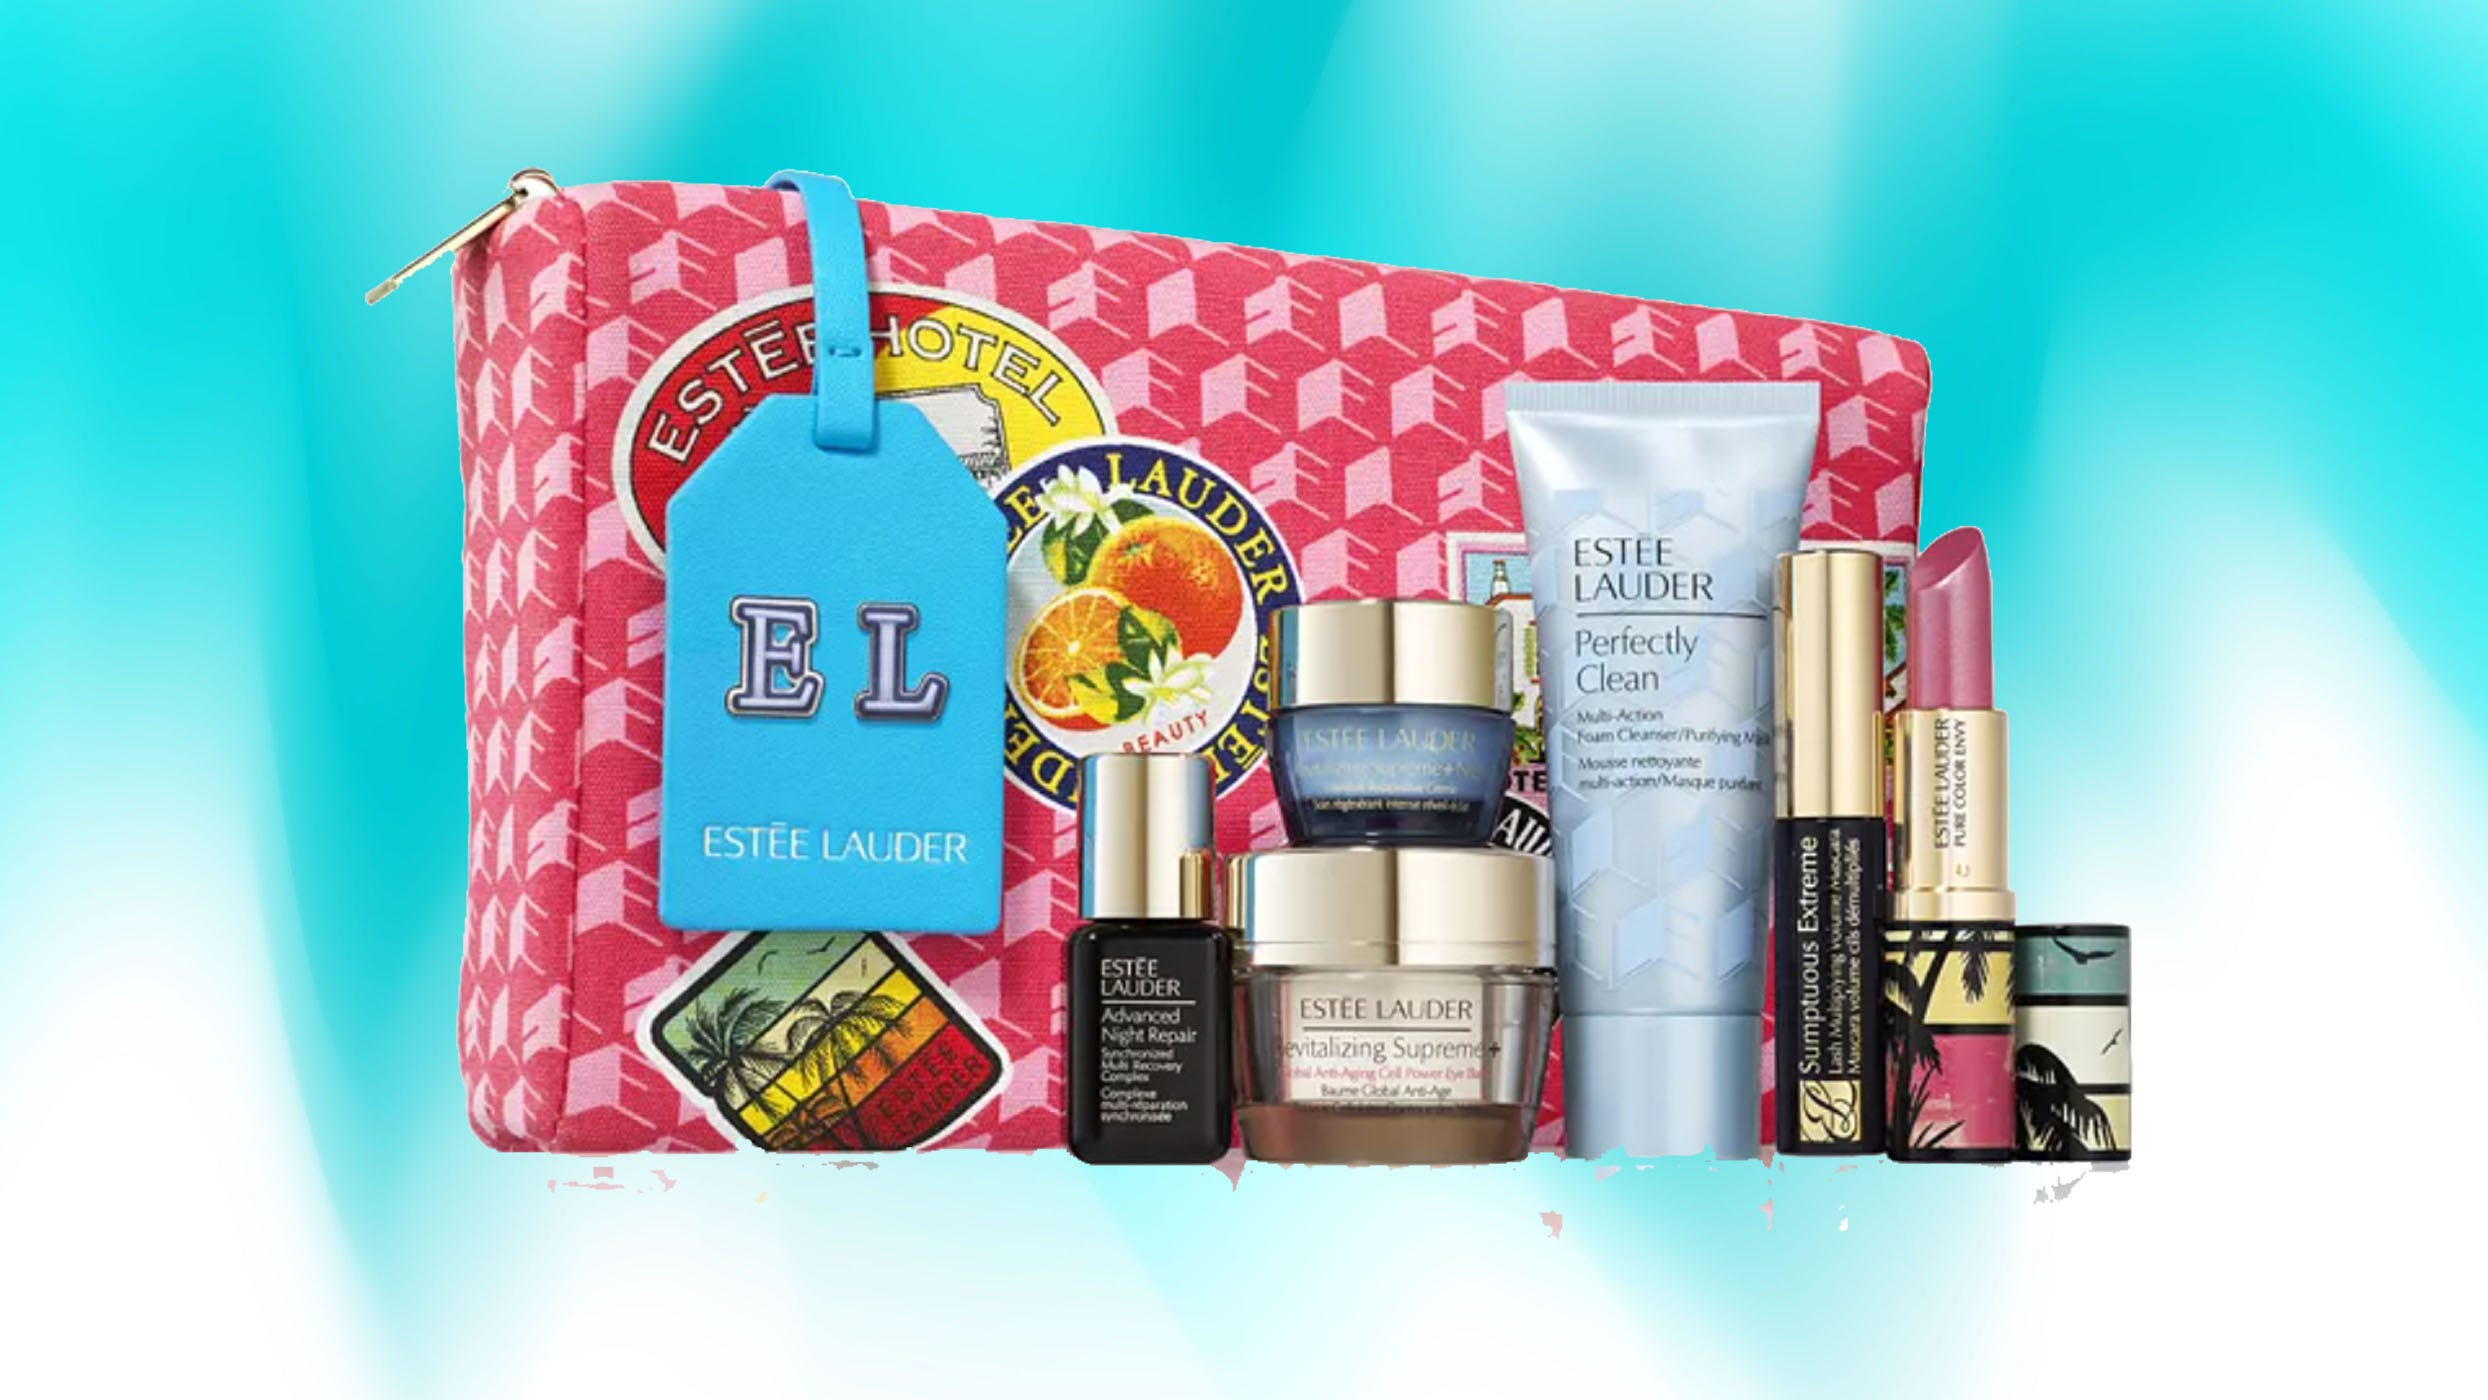 Estee Lauder Christmas Set 2021 Estee Lauder Free Gift Get A Seven Piece Set From The Brand Free Of Charge